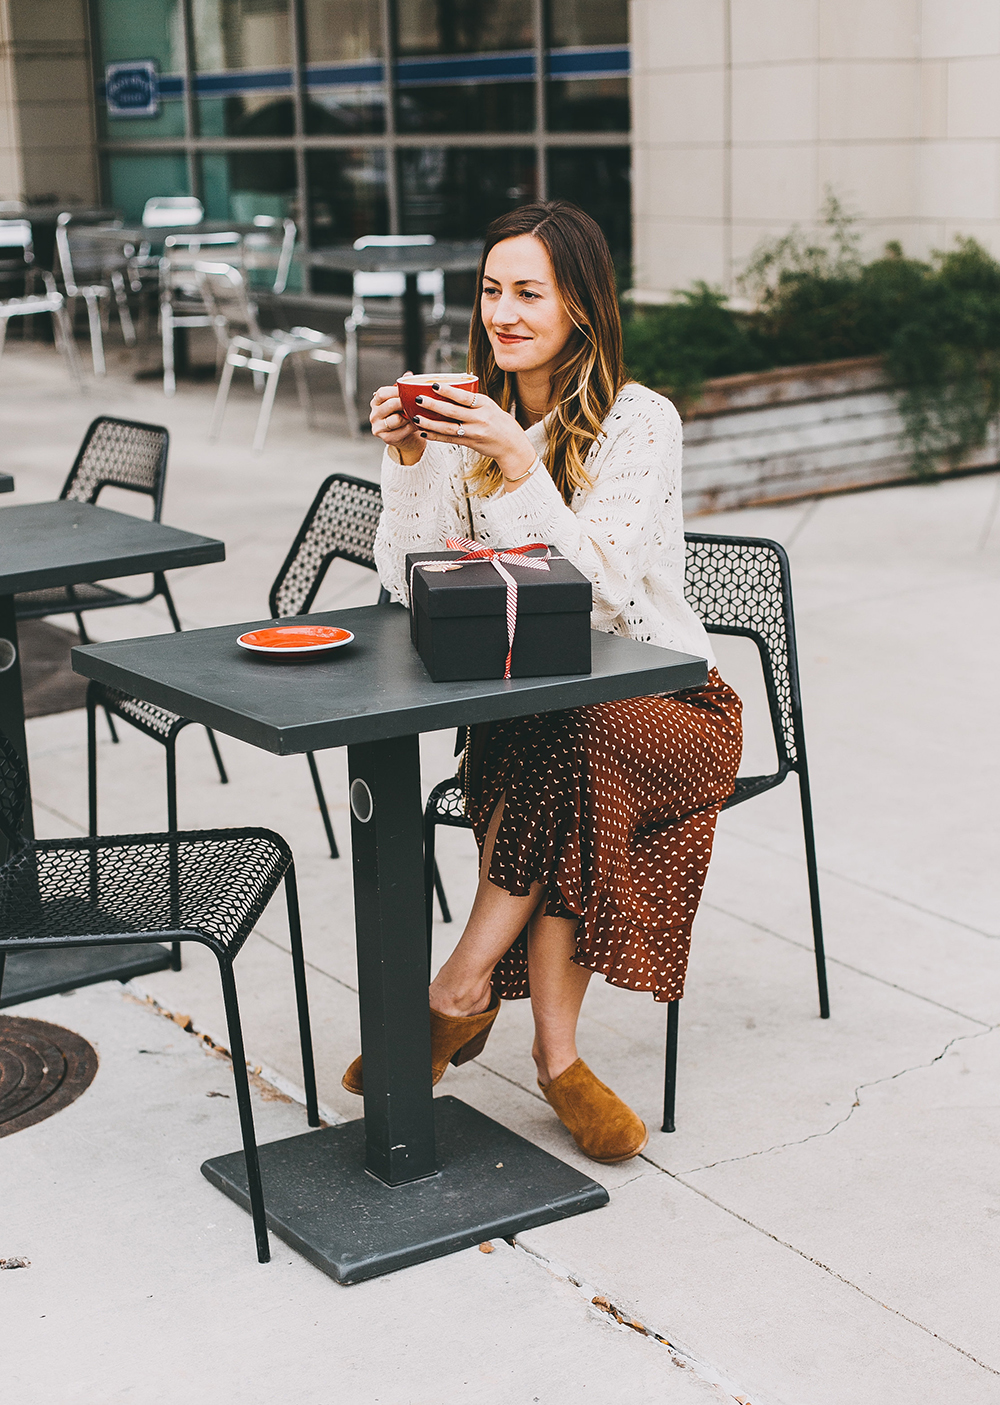 livvyland-crate-joy-coffee-classic-novel-dress-layered-sweater-austin-texas-fashion-blogger-11